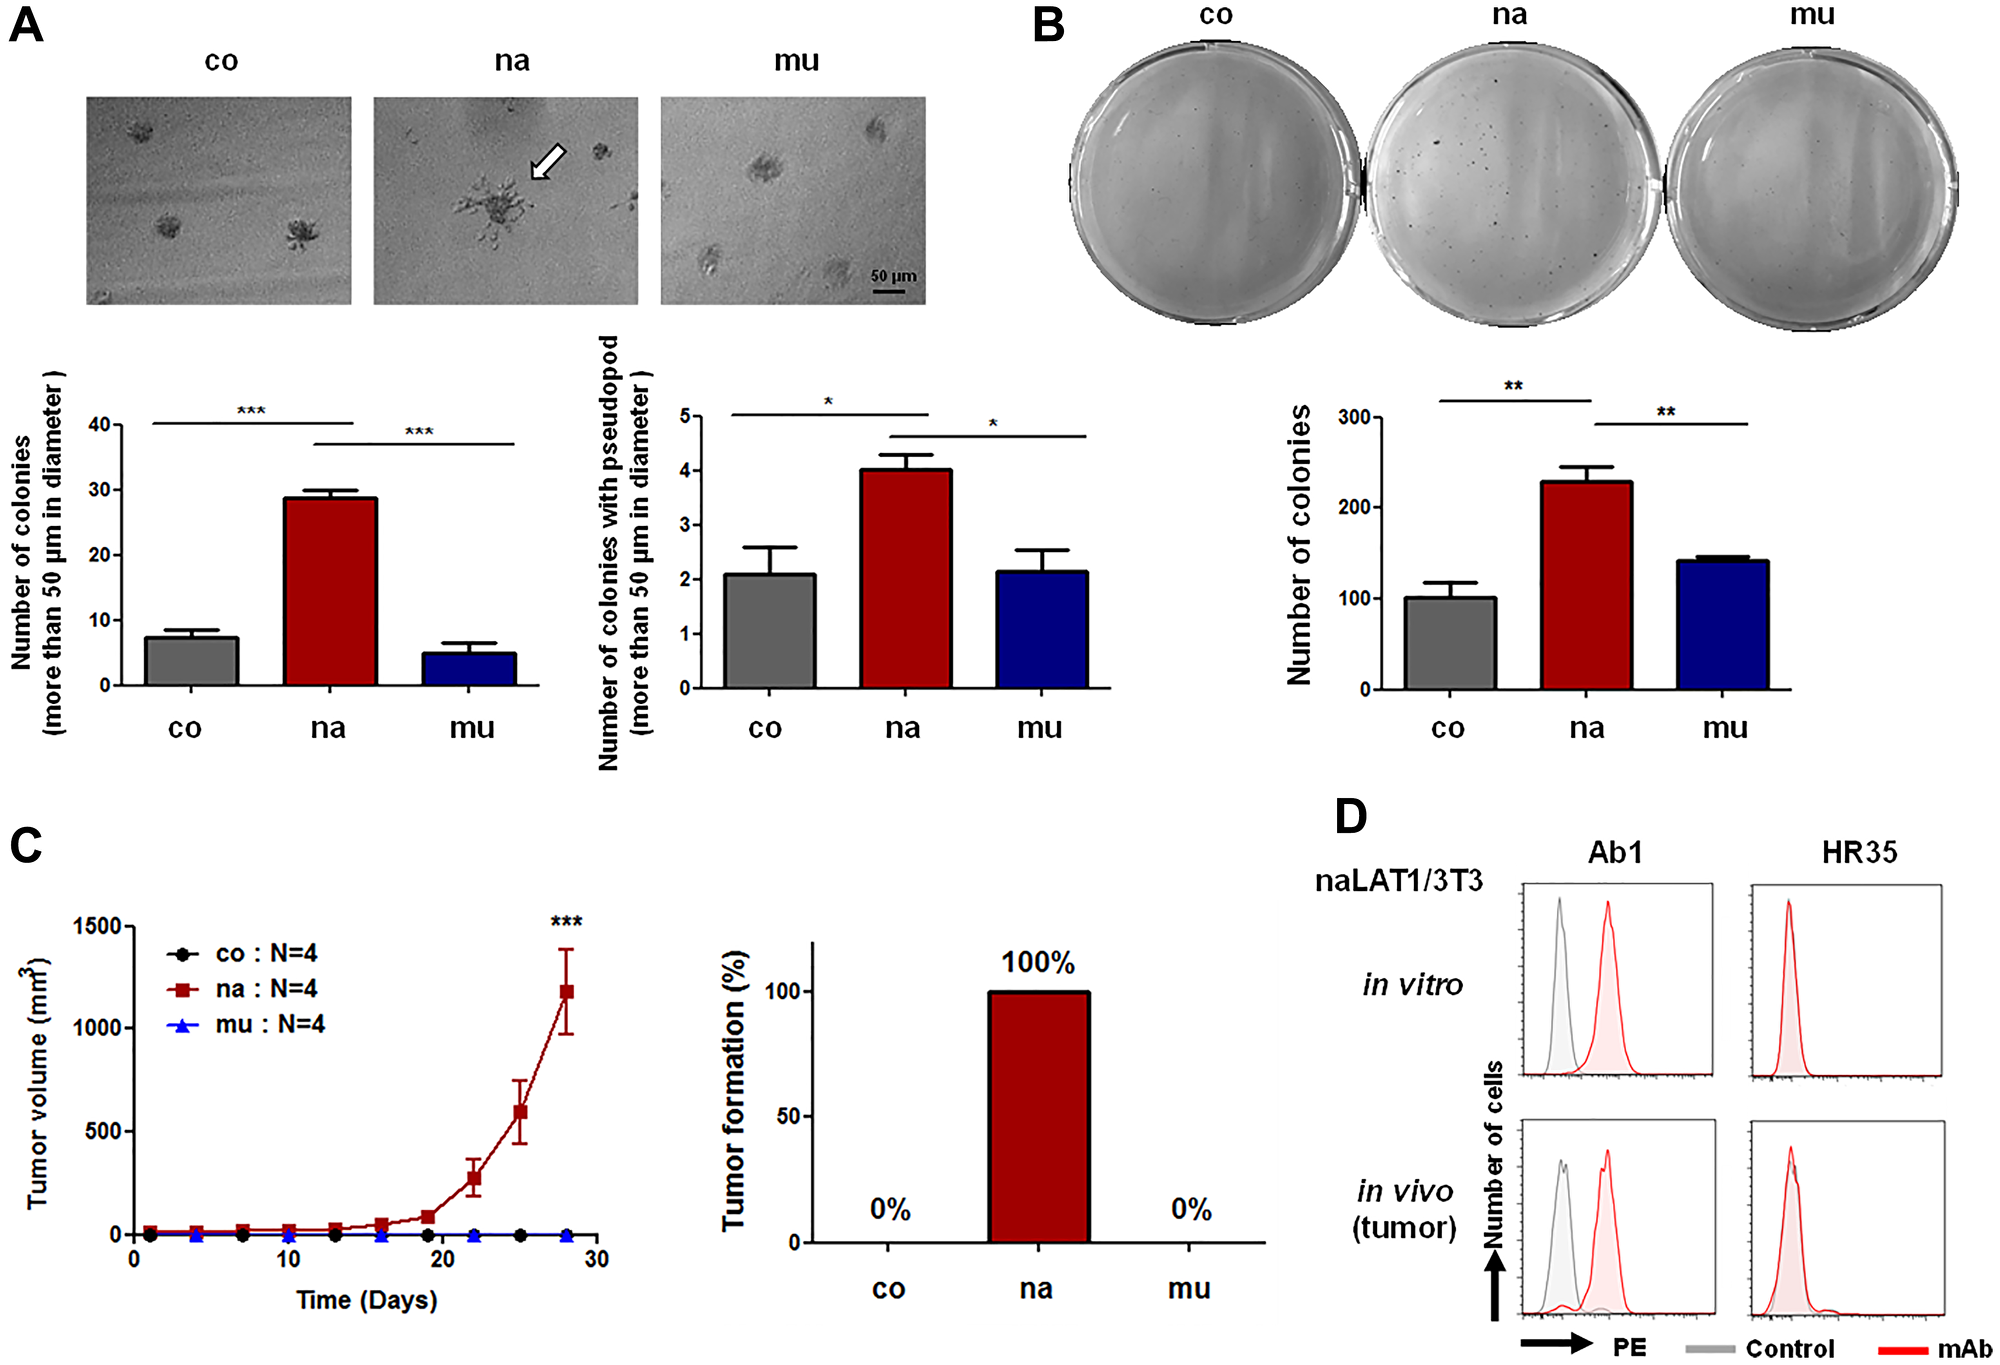 Cell malignancy-related phenotypes of NIH3T3 cell lines overexpressing human LAT1 proteins.